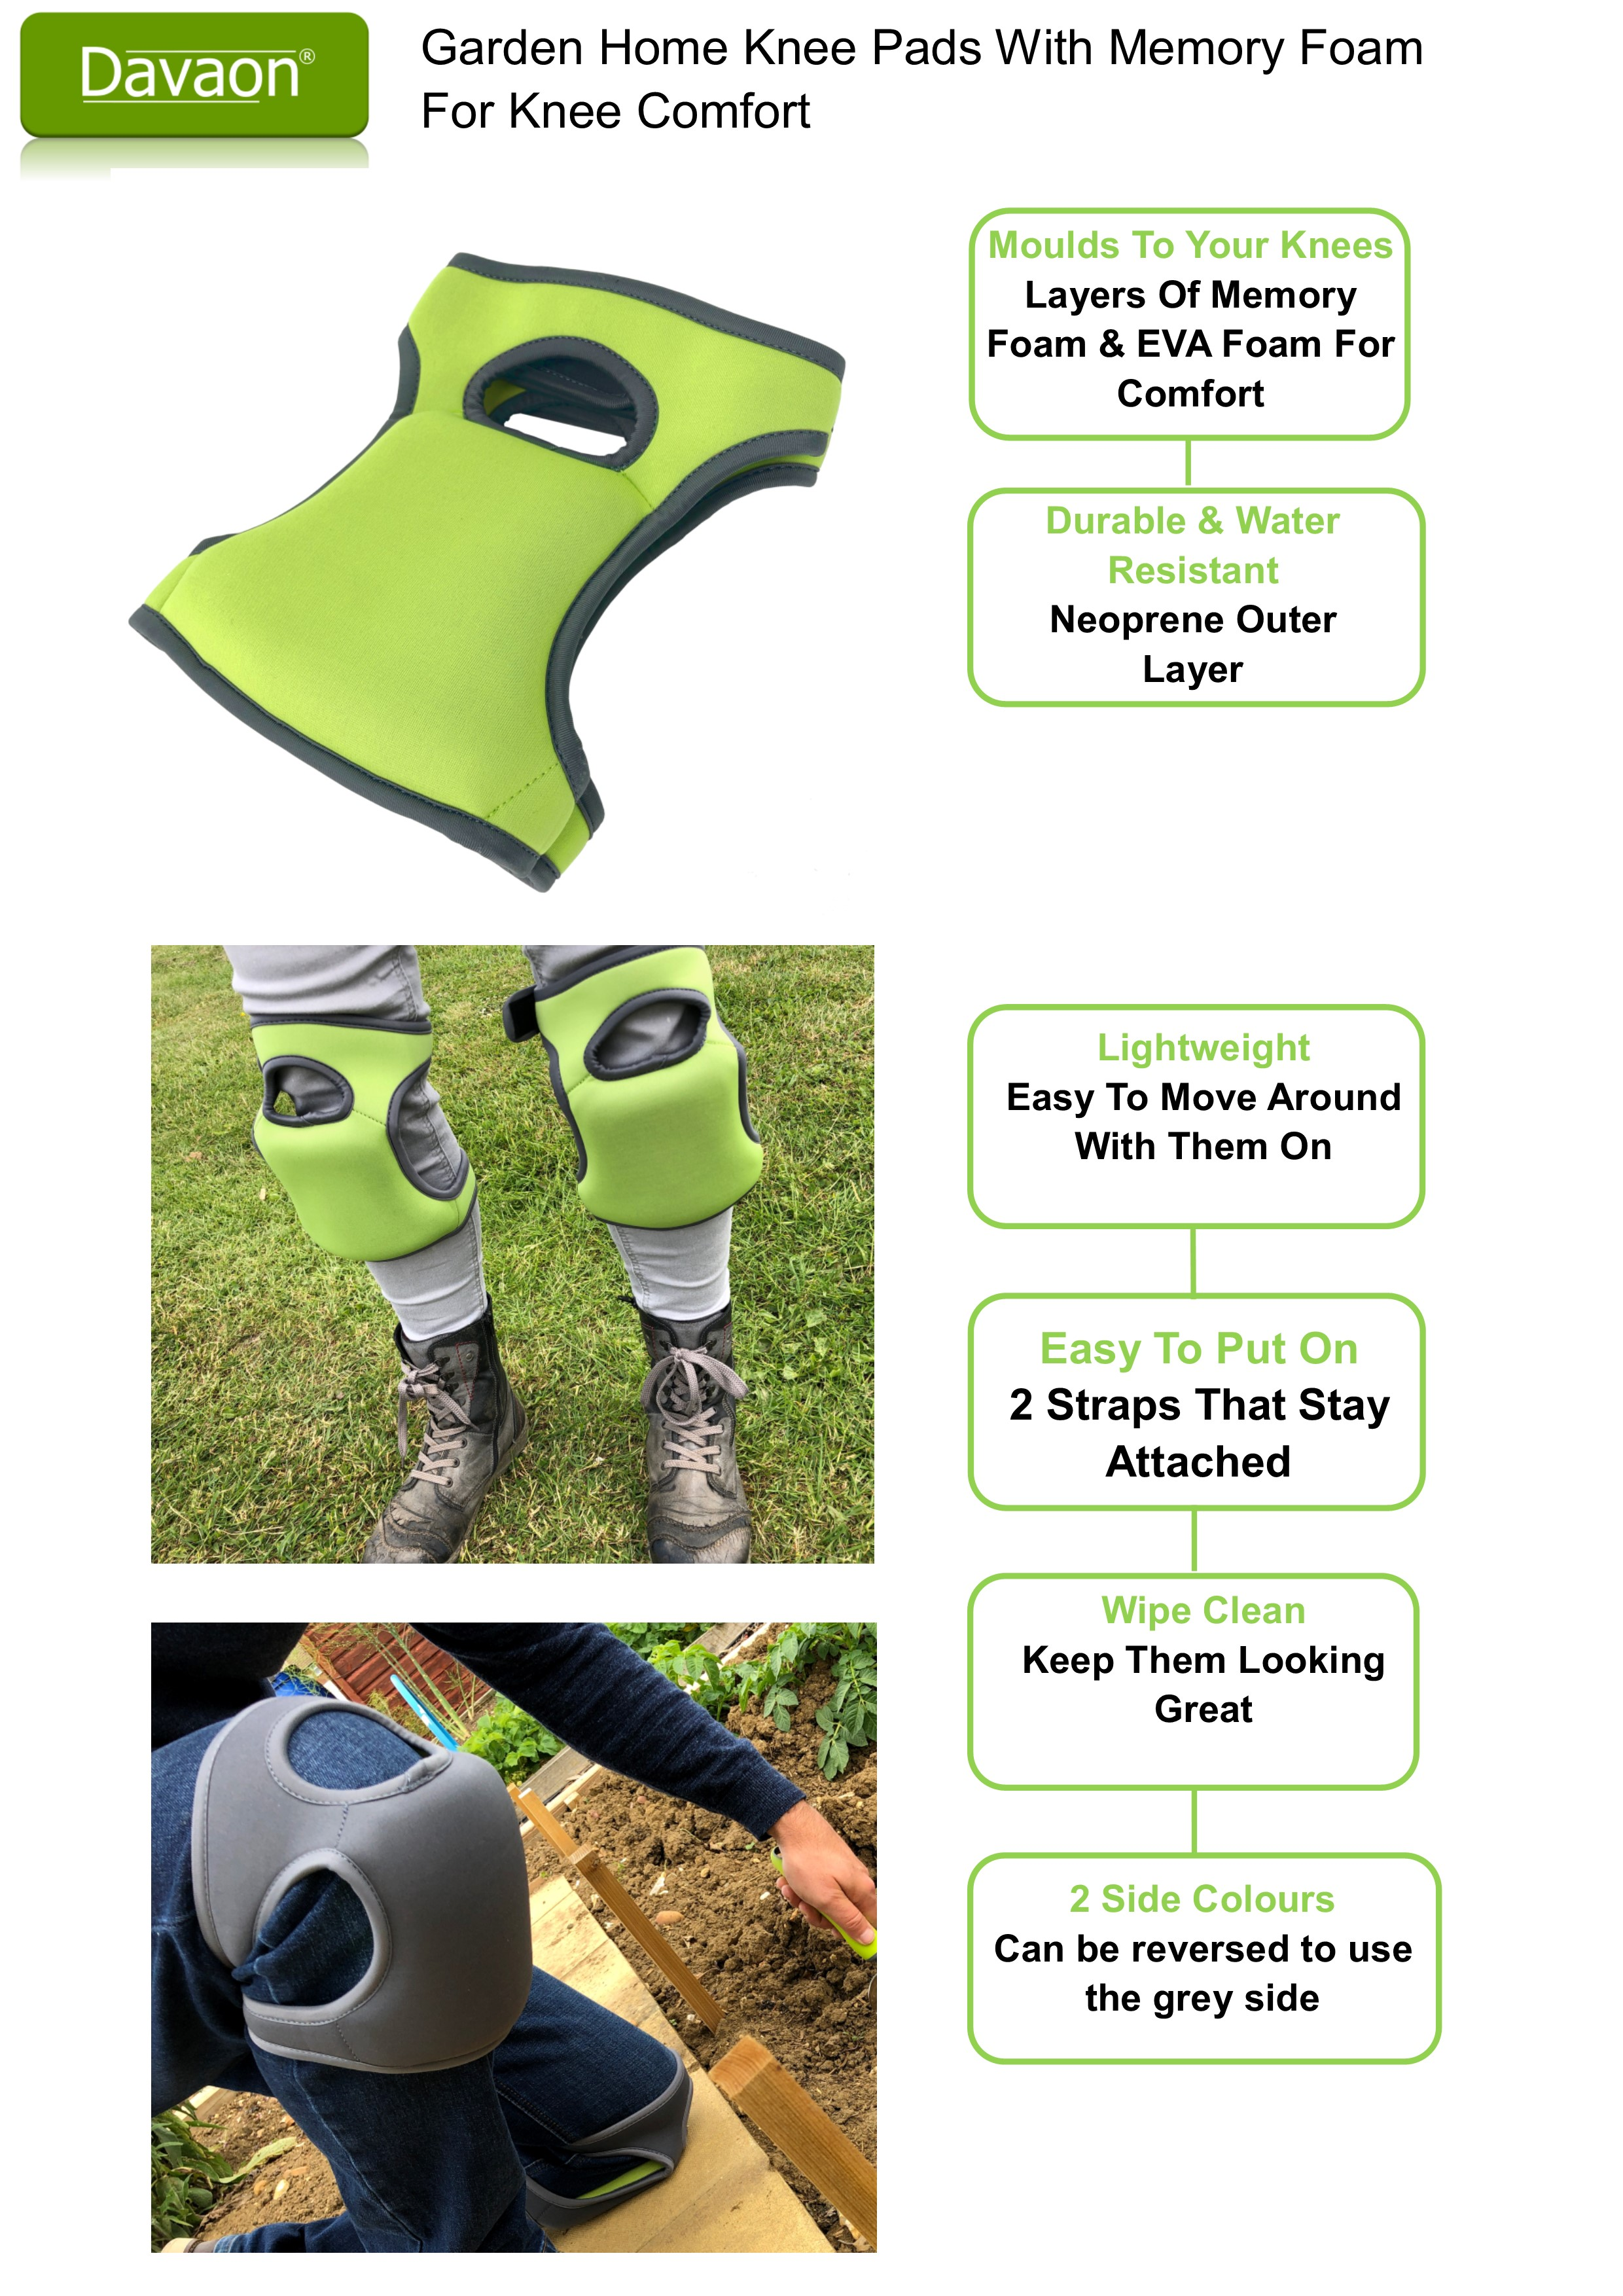 Davaon Kneer Pads Overview Colours 50 50